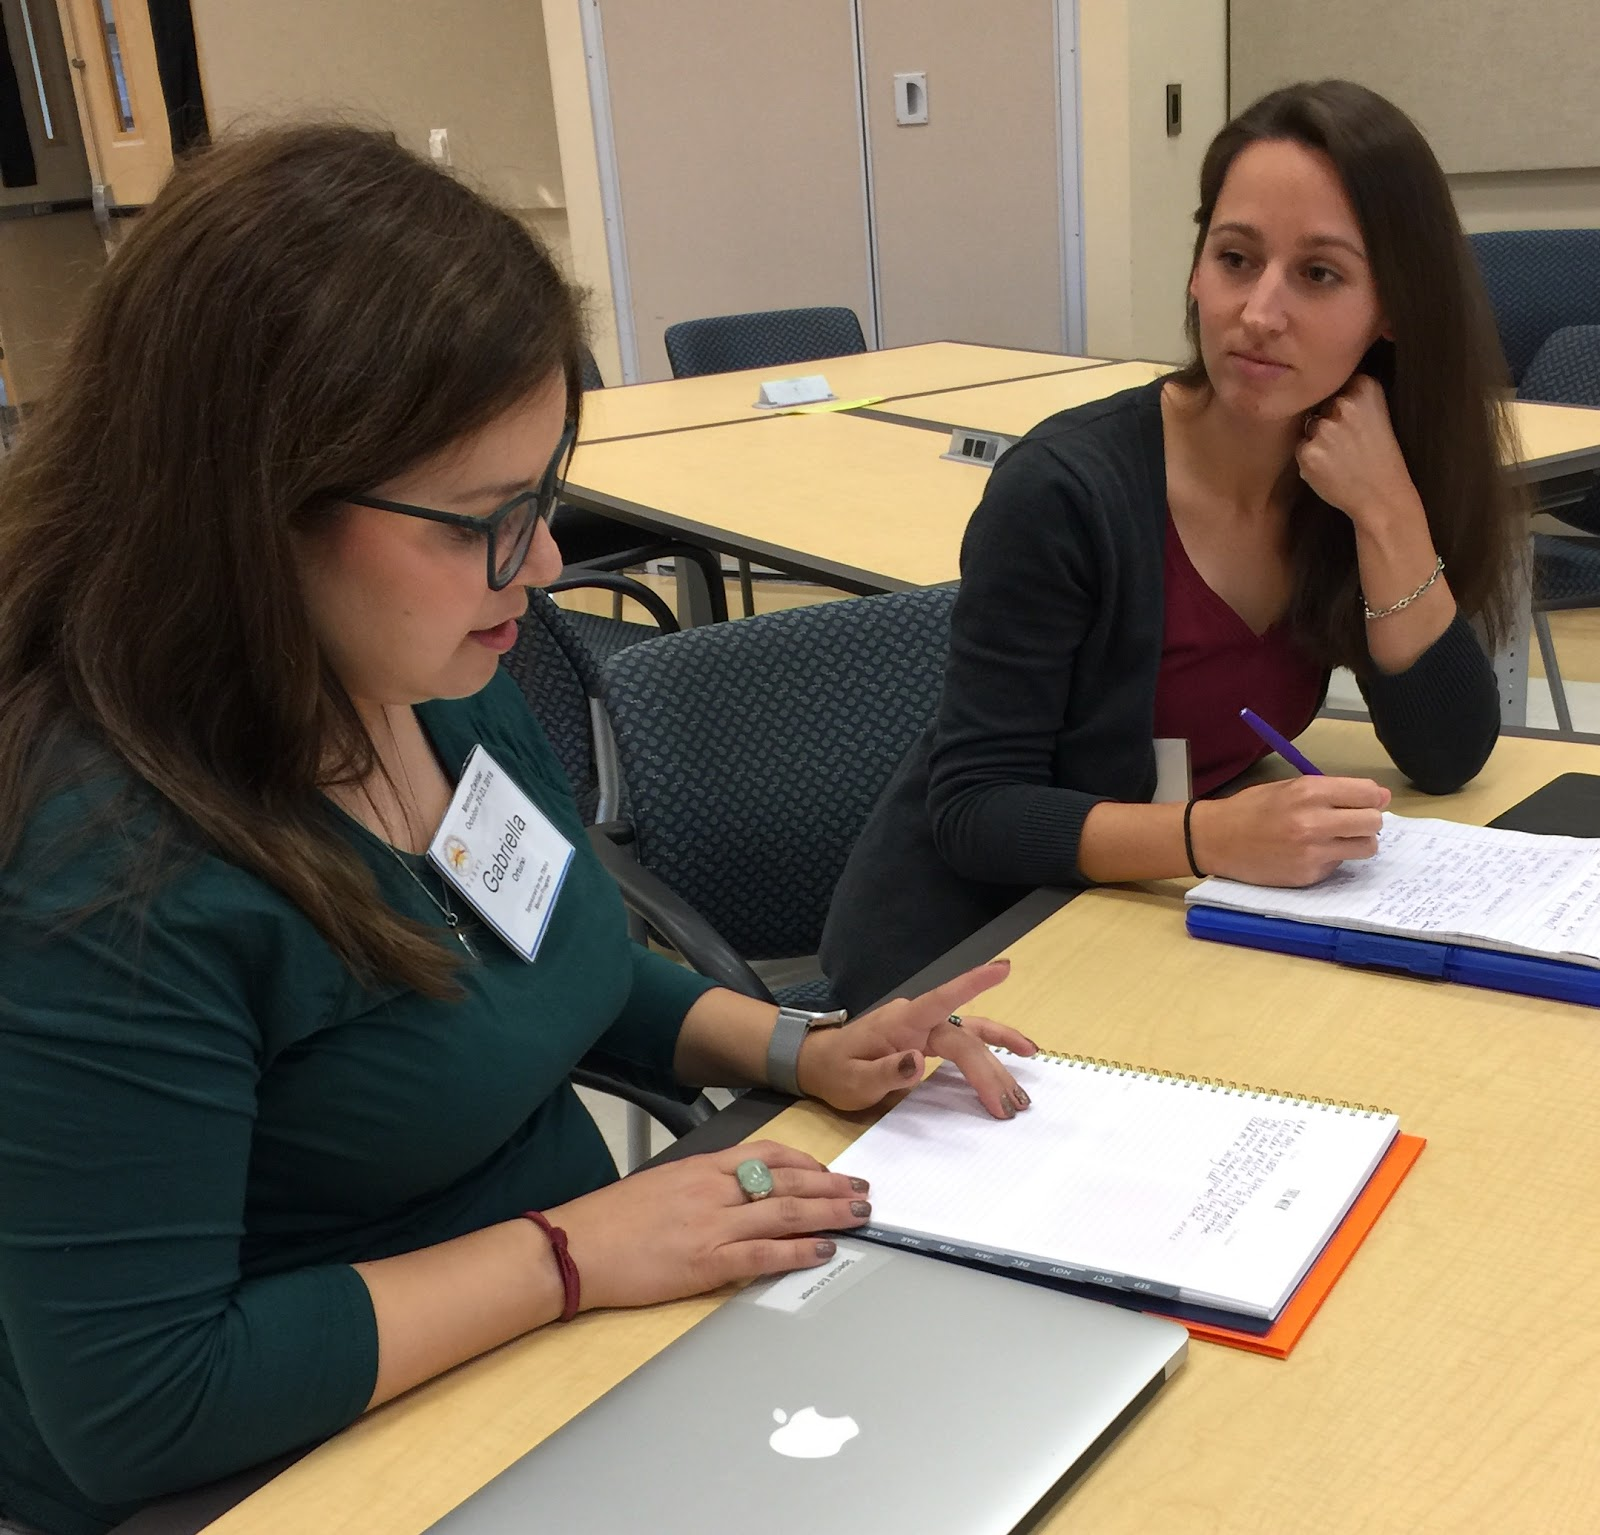 Two teachers sit at a table and talk to each other and take notes in notebooks.  They are seated in the TSBVI Outreach conference room.